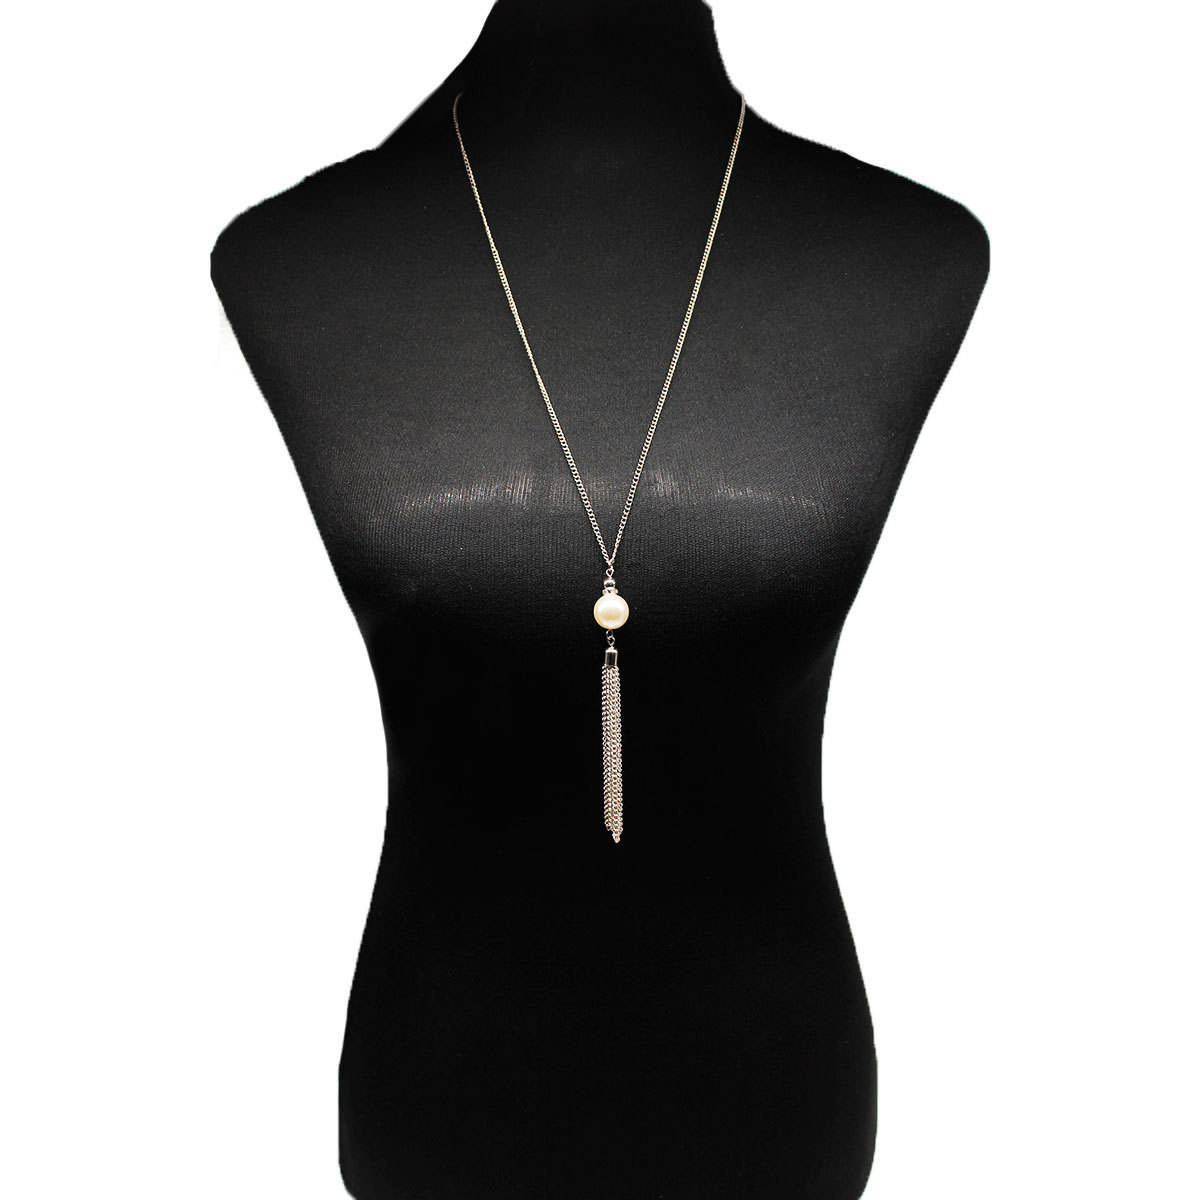 Pearl [ Necklace Pearl Pendants ] Necklace Pendant Long Fashion Necklace Pearl Charm Pendants